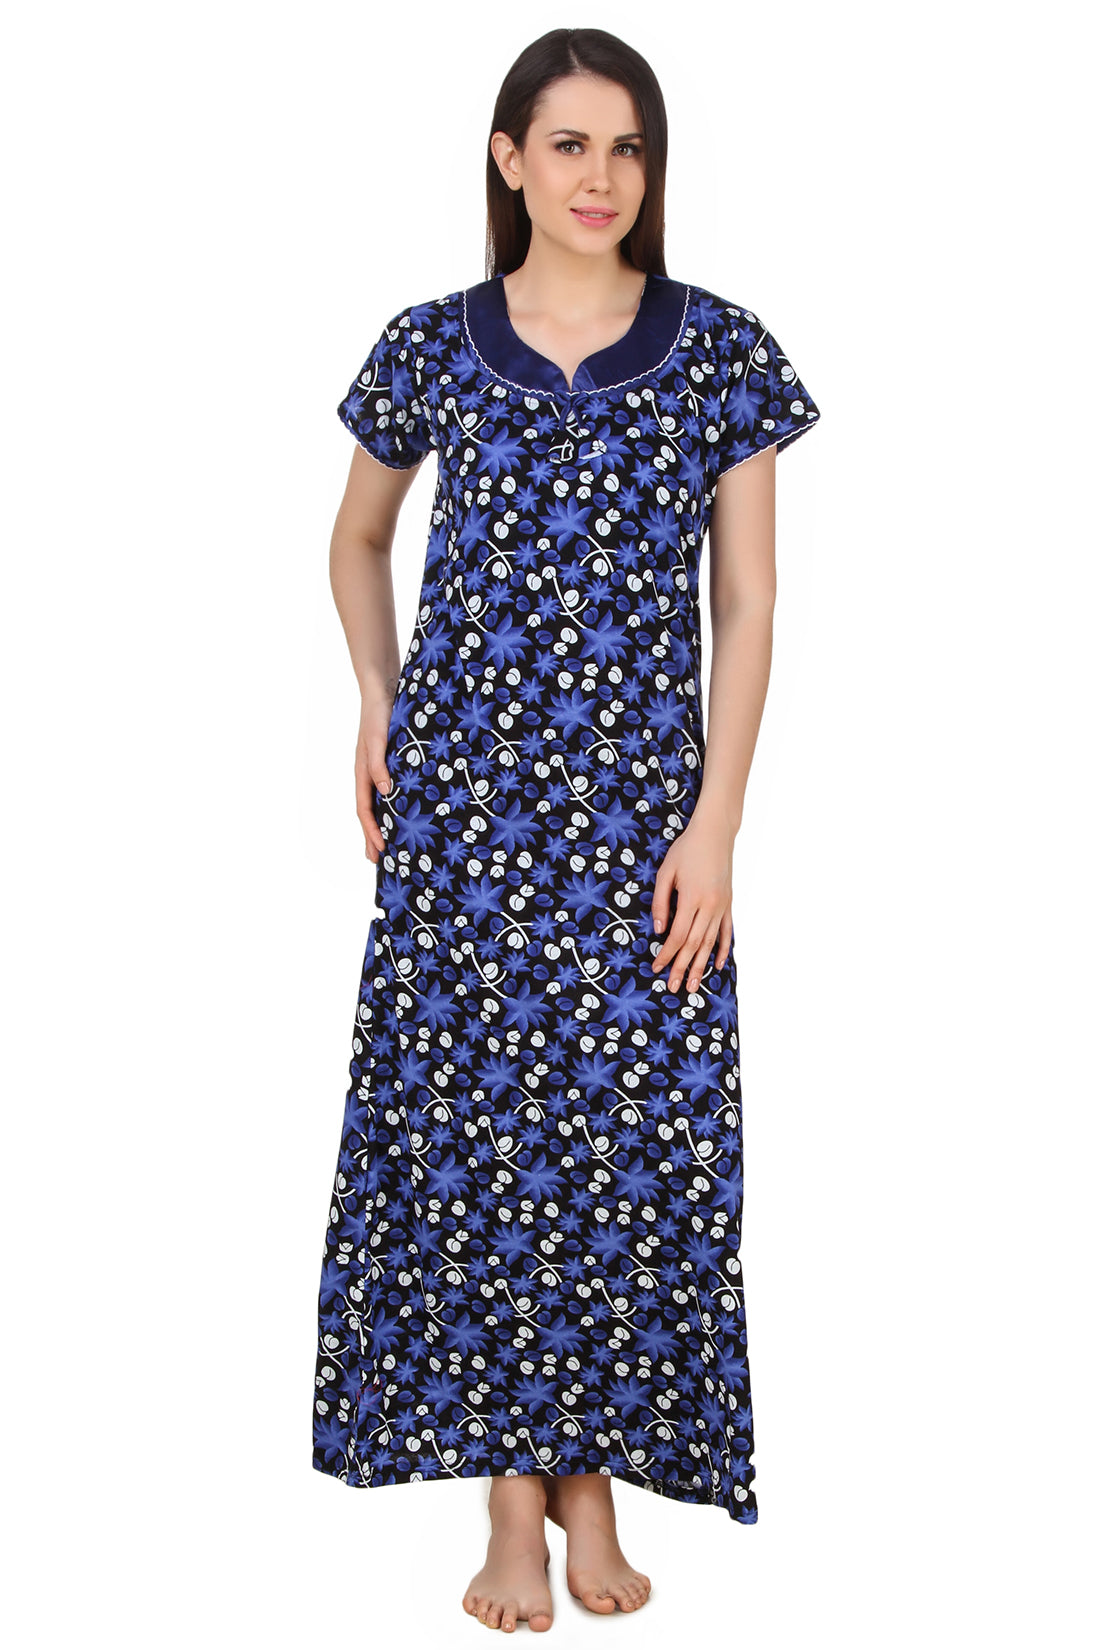 Fasense Sinker Cotton Long Nighty DP159 - fasensestore